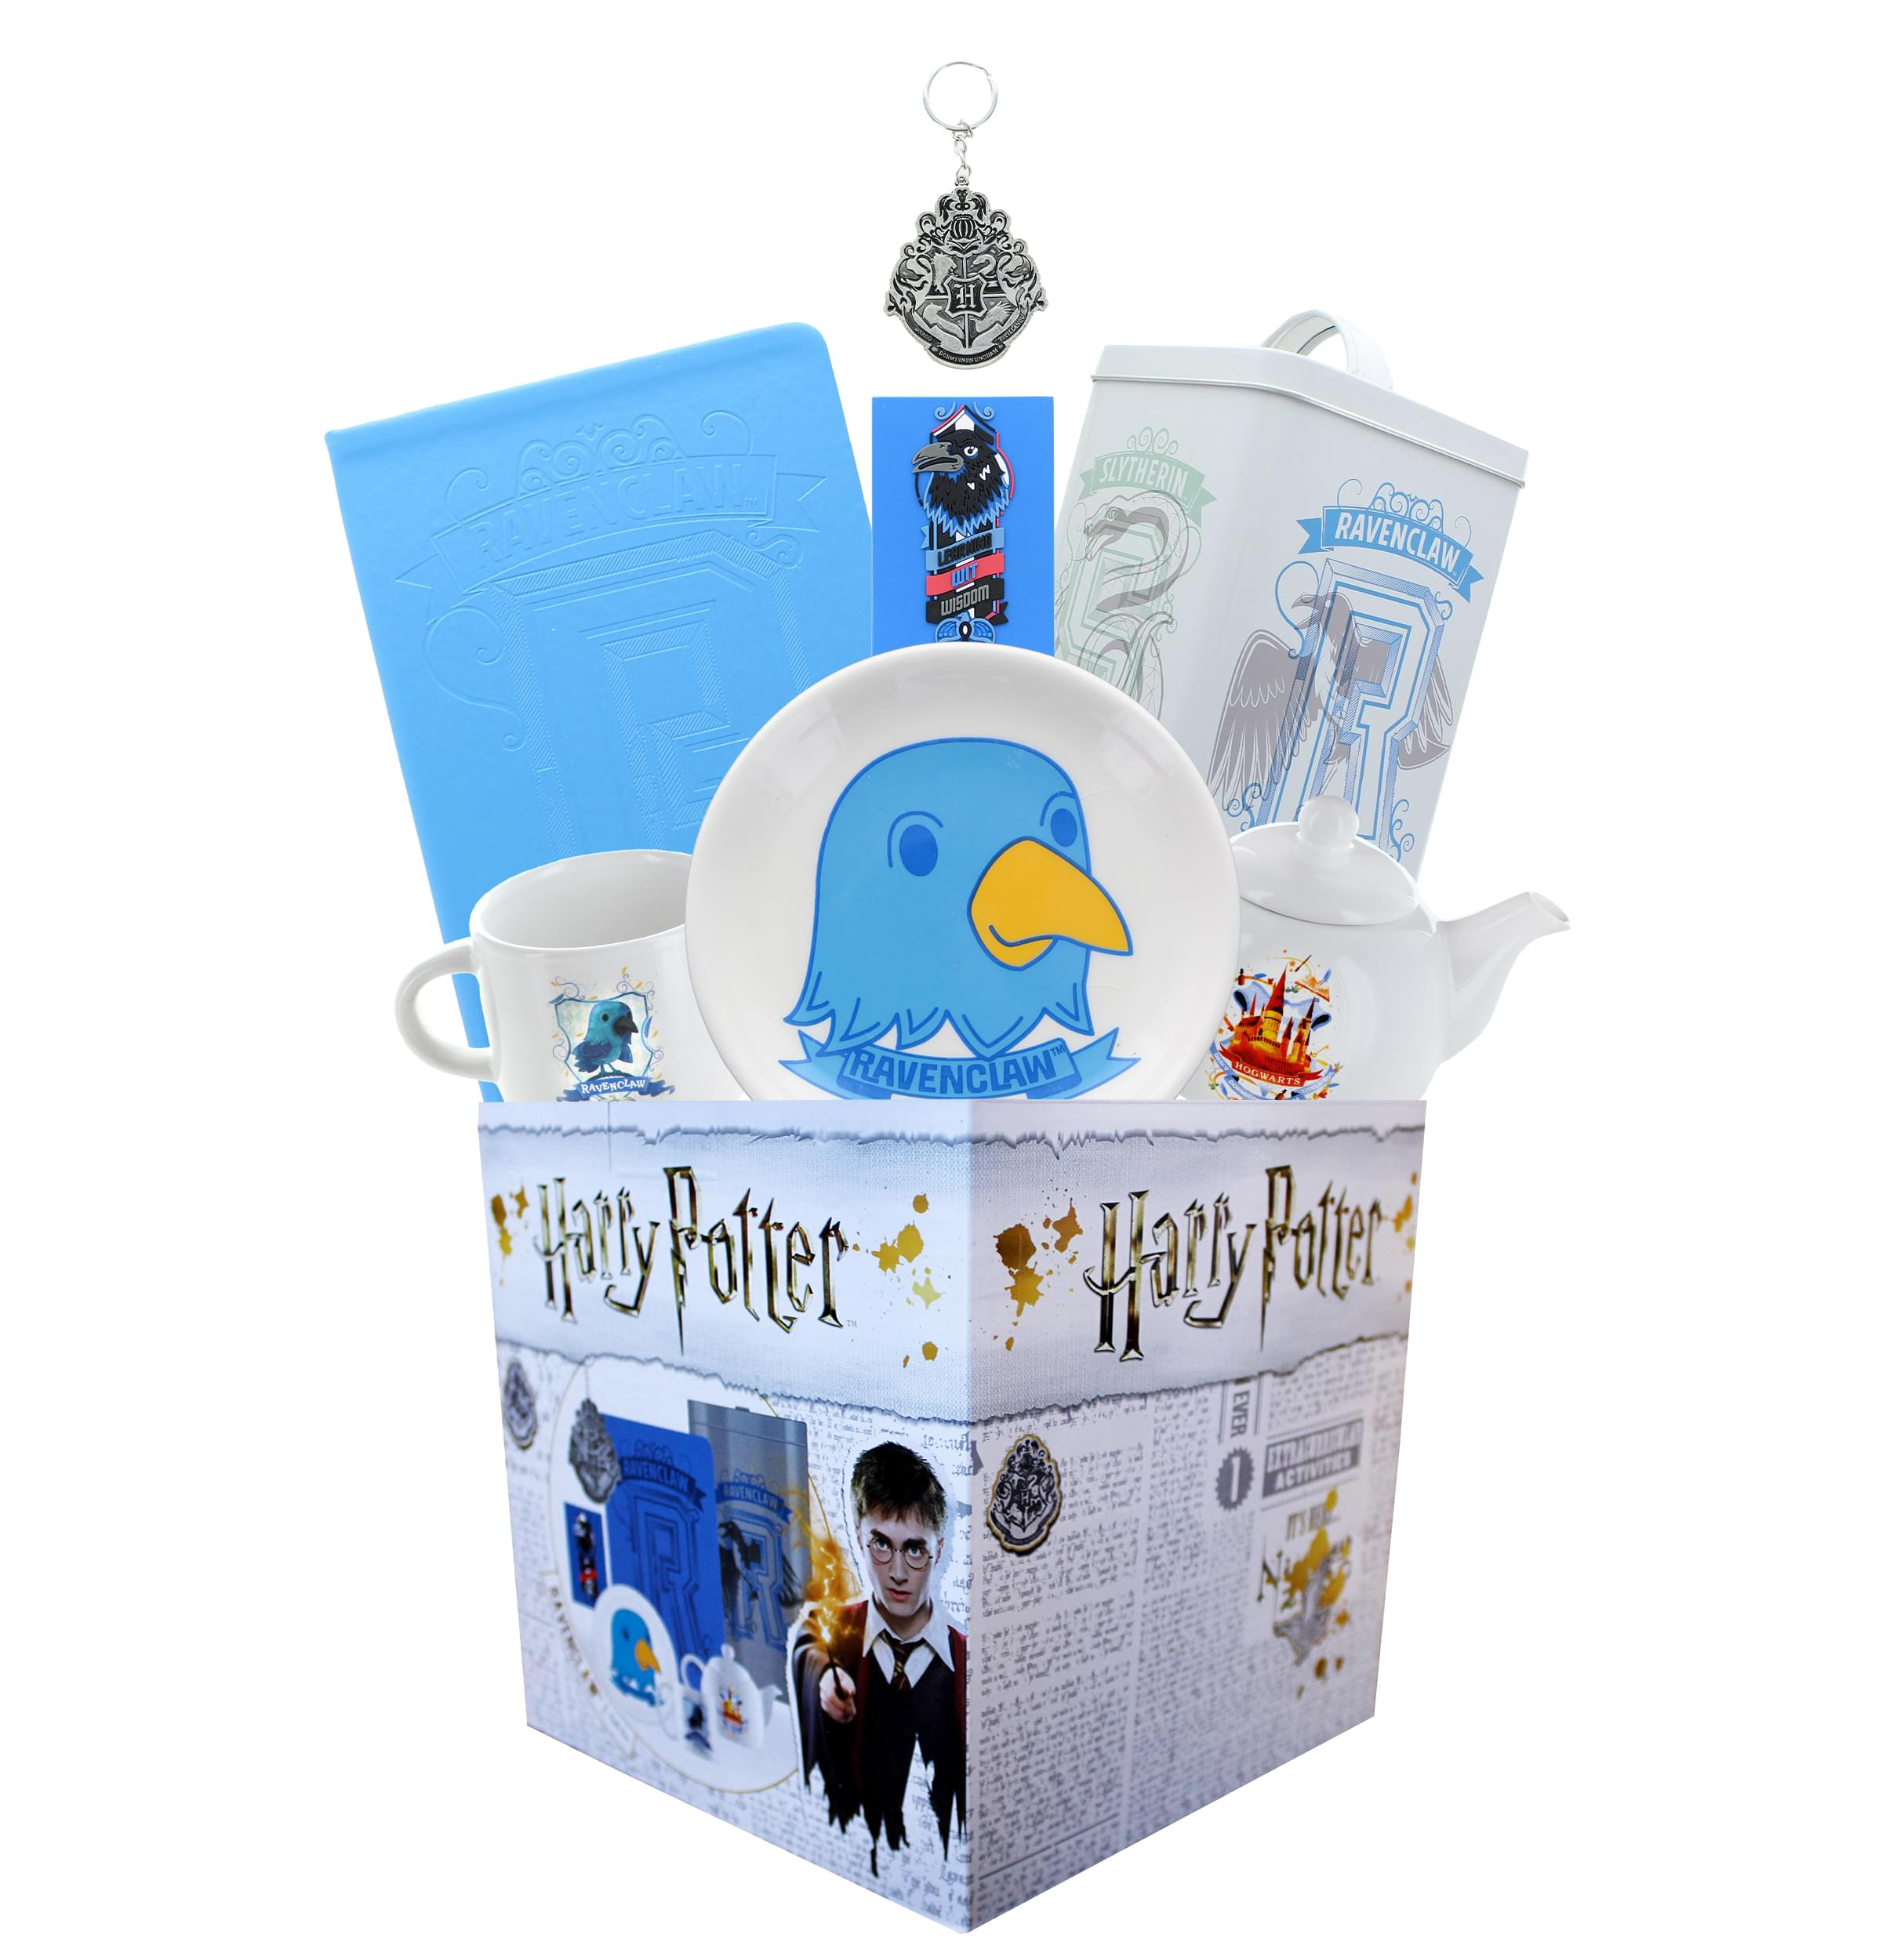 Contains 7 Official Harry Potter Themed Gifts Including Hufflepuff Journals Harry Potter Hufflepuff House LookSee Box Square Gift Box Measures 7.75 Inches Magnets /& More